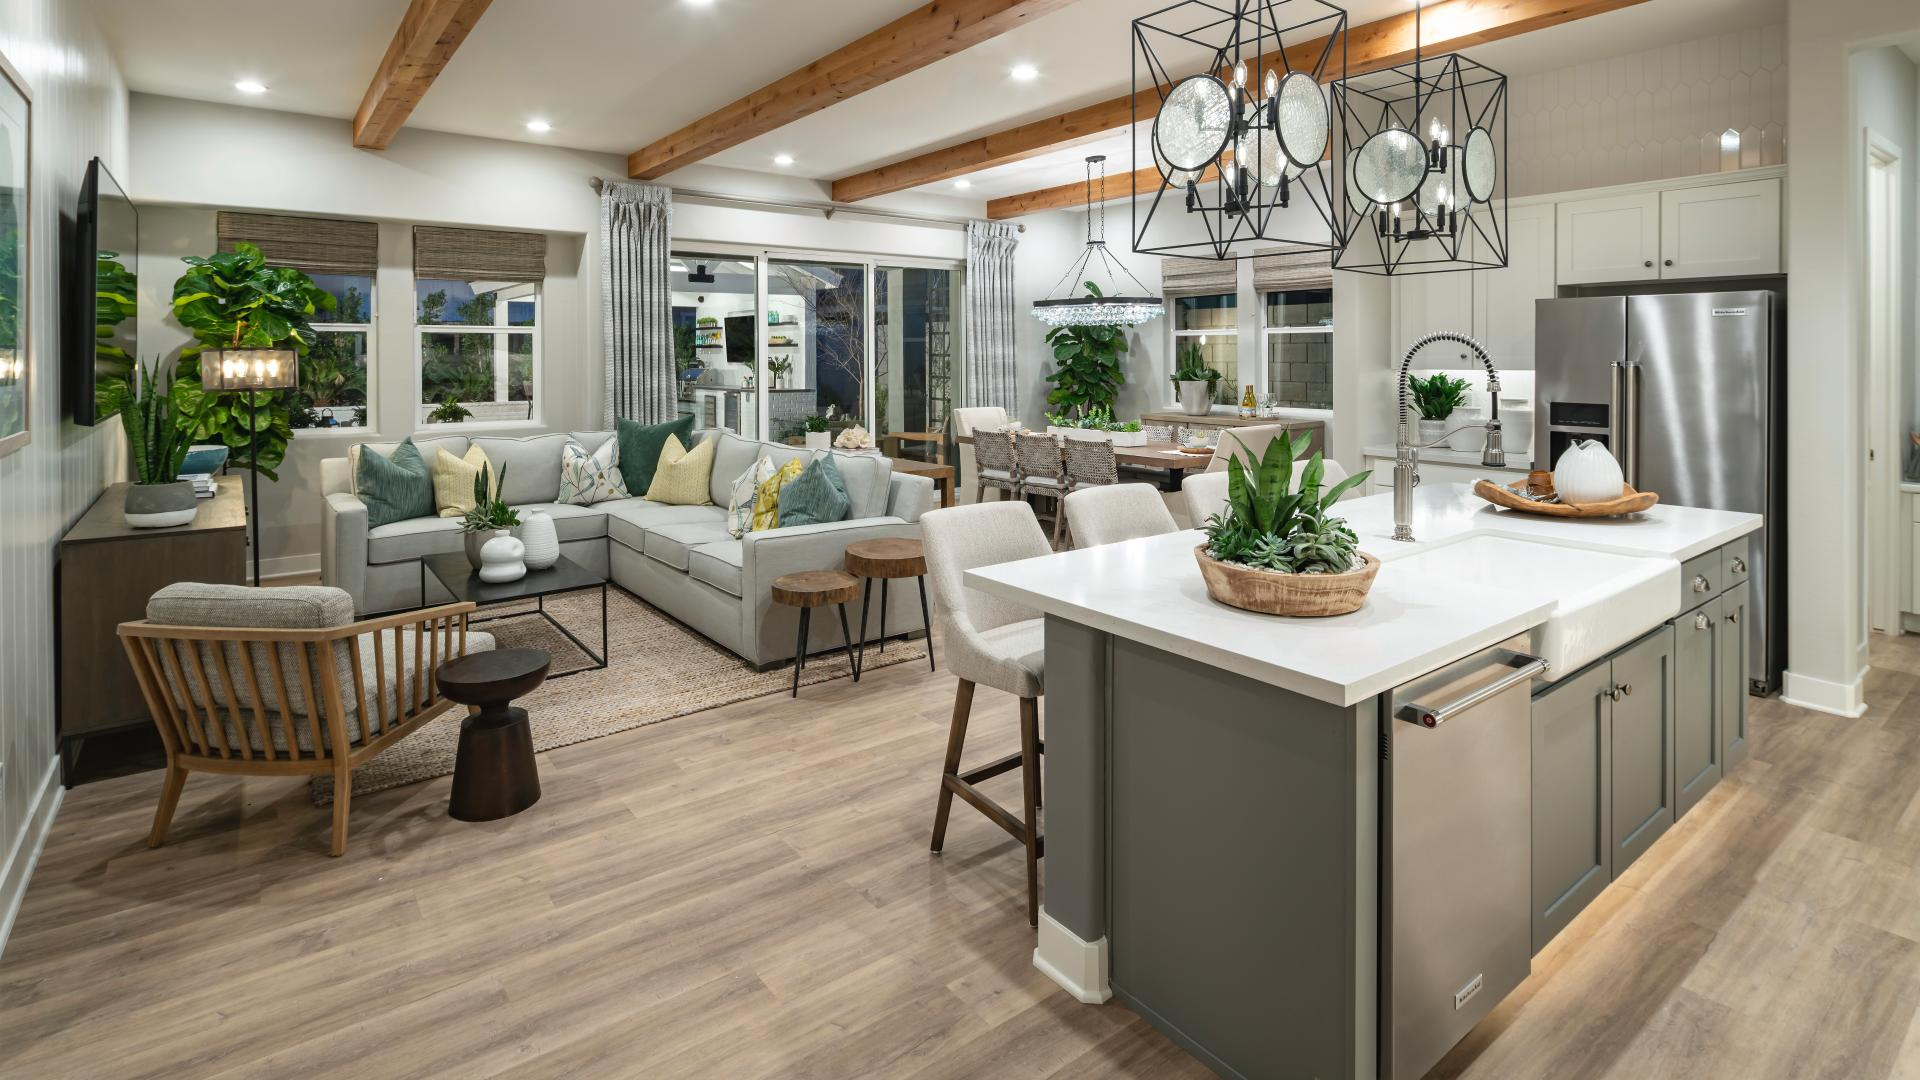 Open concept great rooms for entertaining